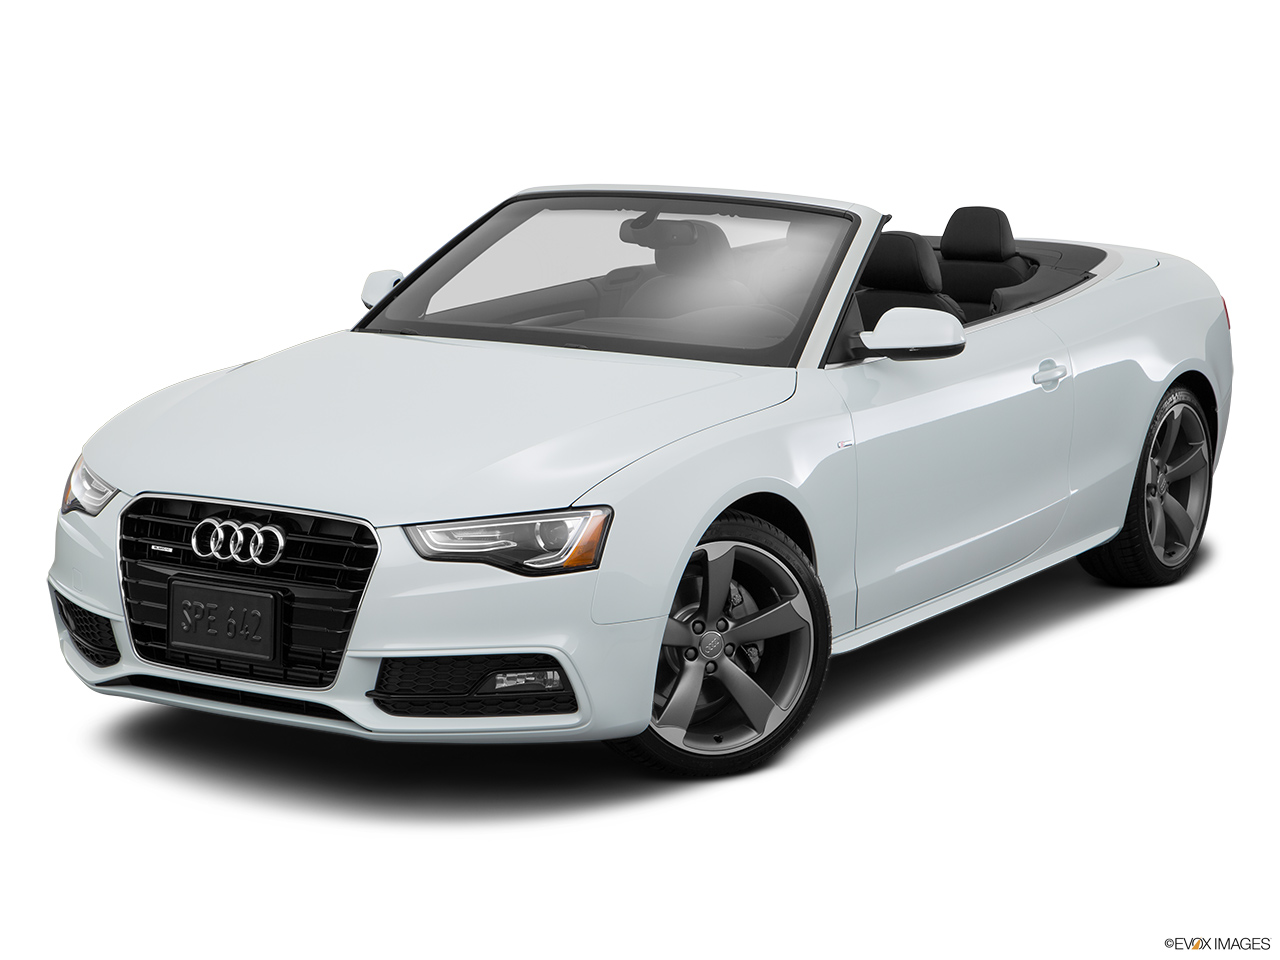 car features list for audi a5 cabriolet 2016 3 0l 272 hp uae yallamotor. Black Bedroom Furniture Sets. Home Design Ideas